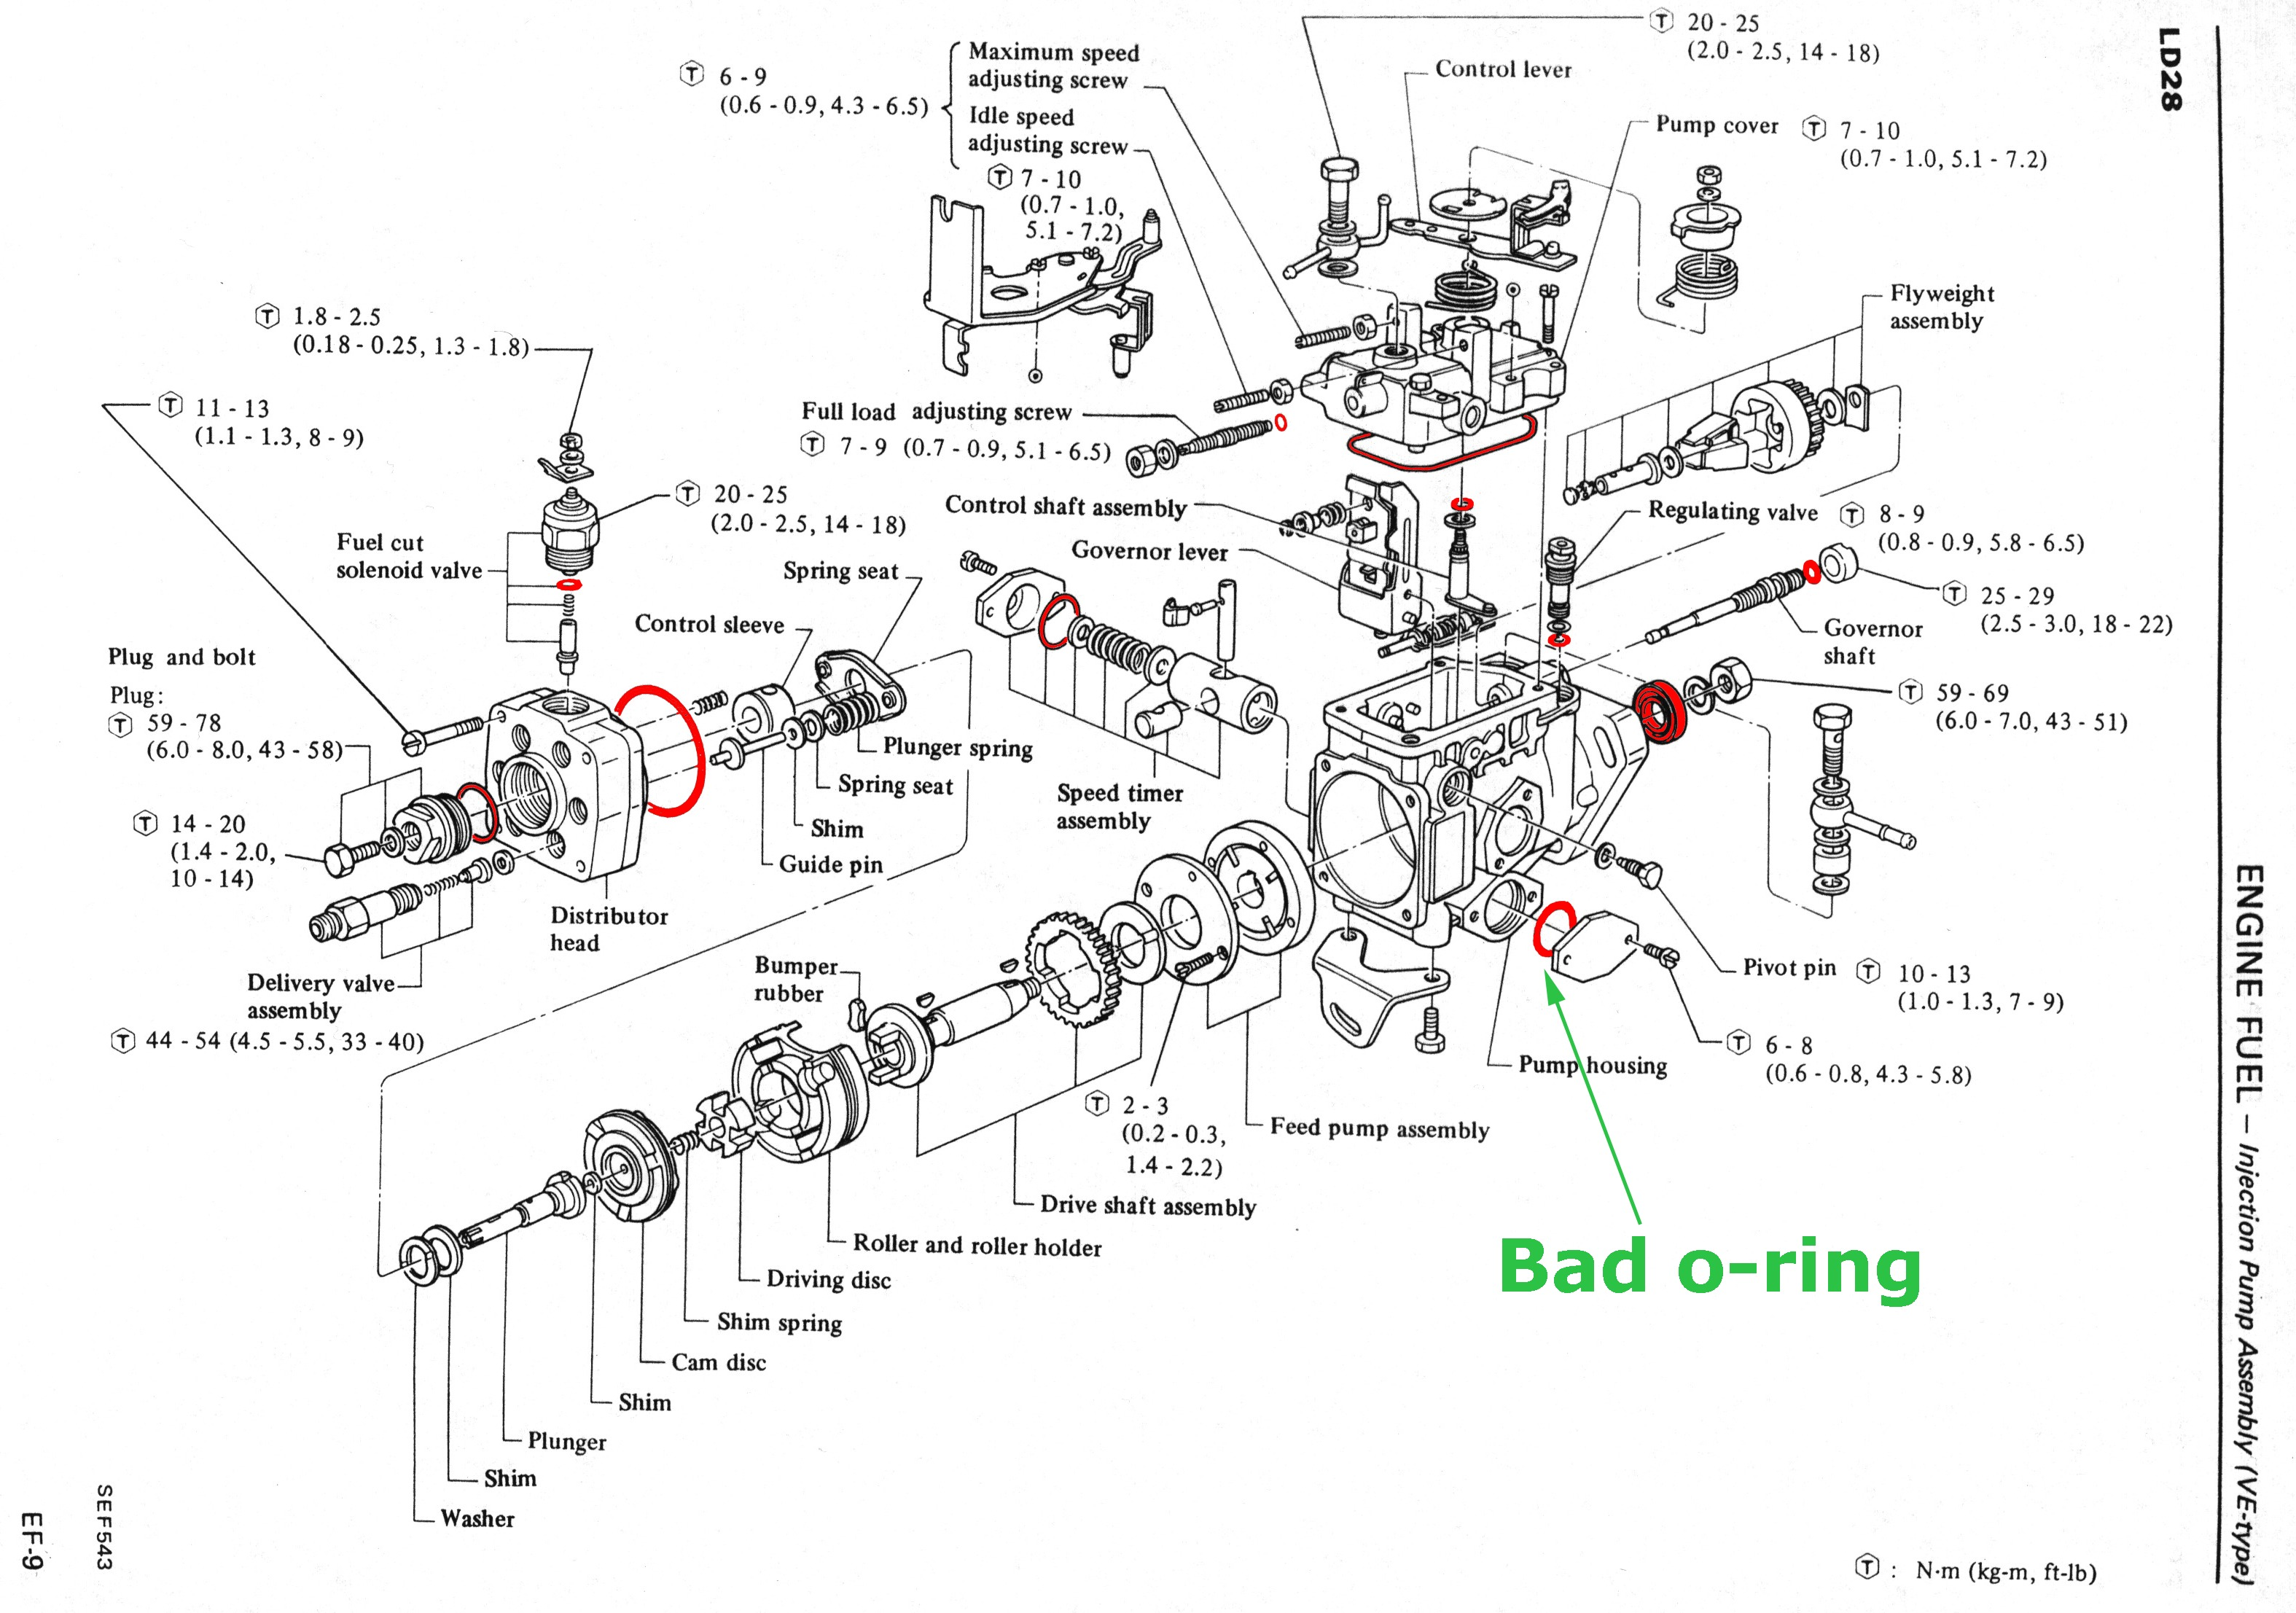 diesel leak at the speed timer cover plate - bosch ve